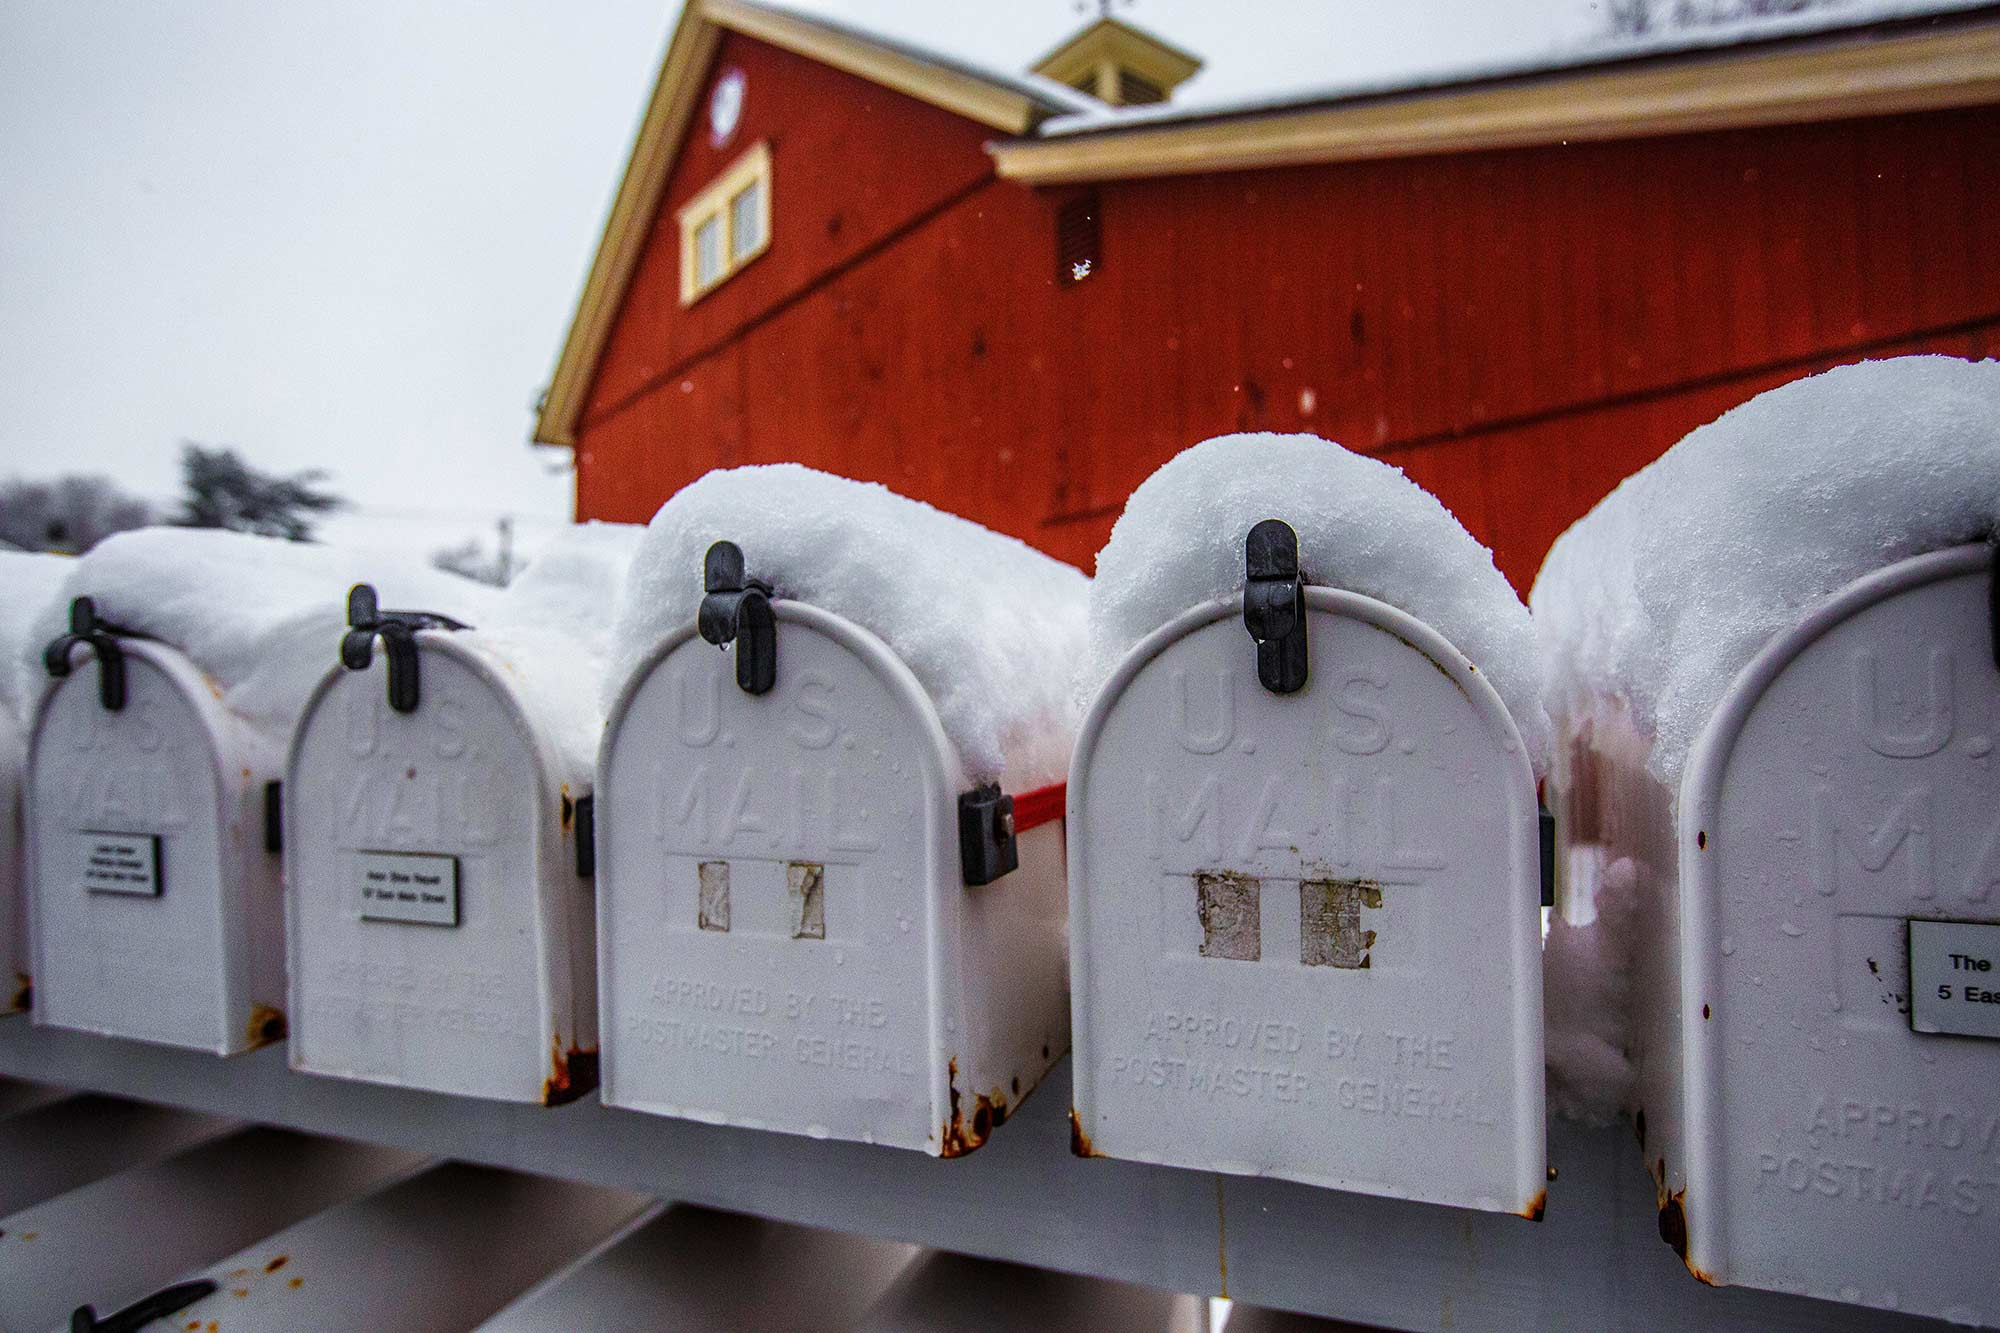 Mailboxes at Avon Old Village, Avon, CT - 1/24/15